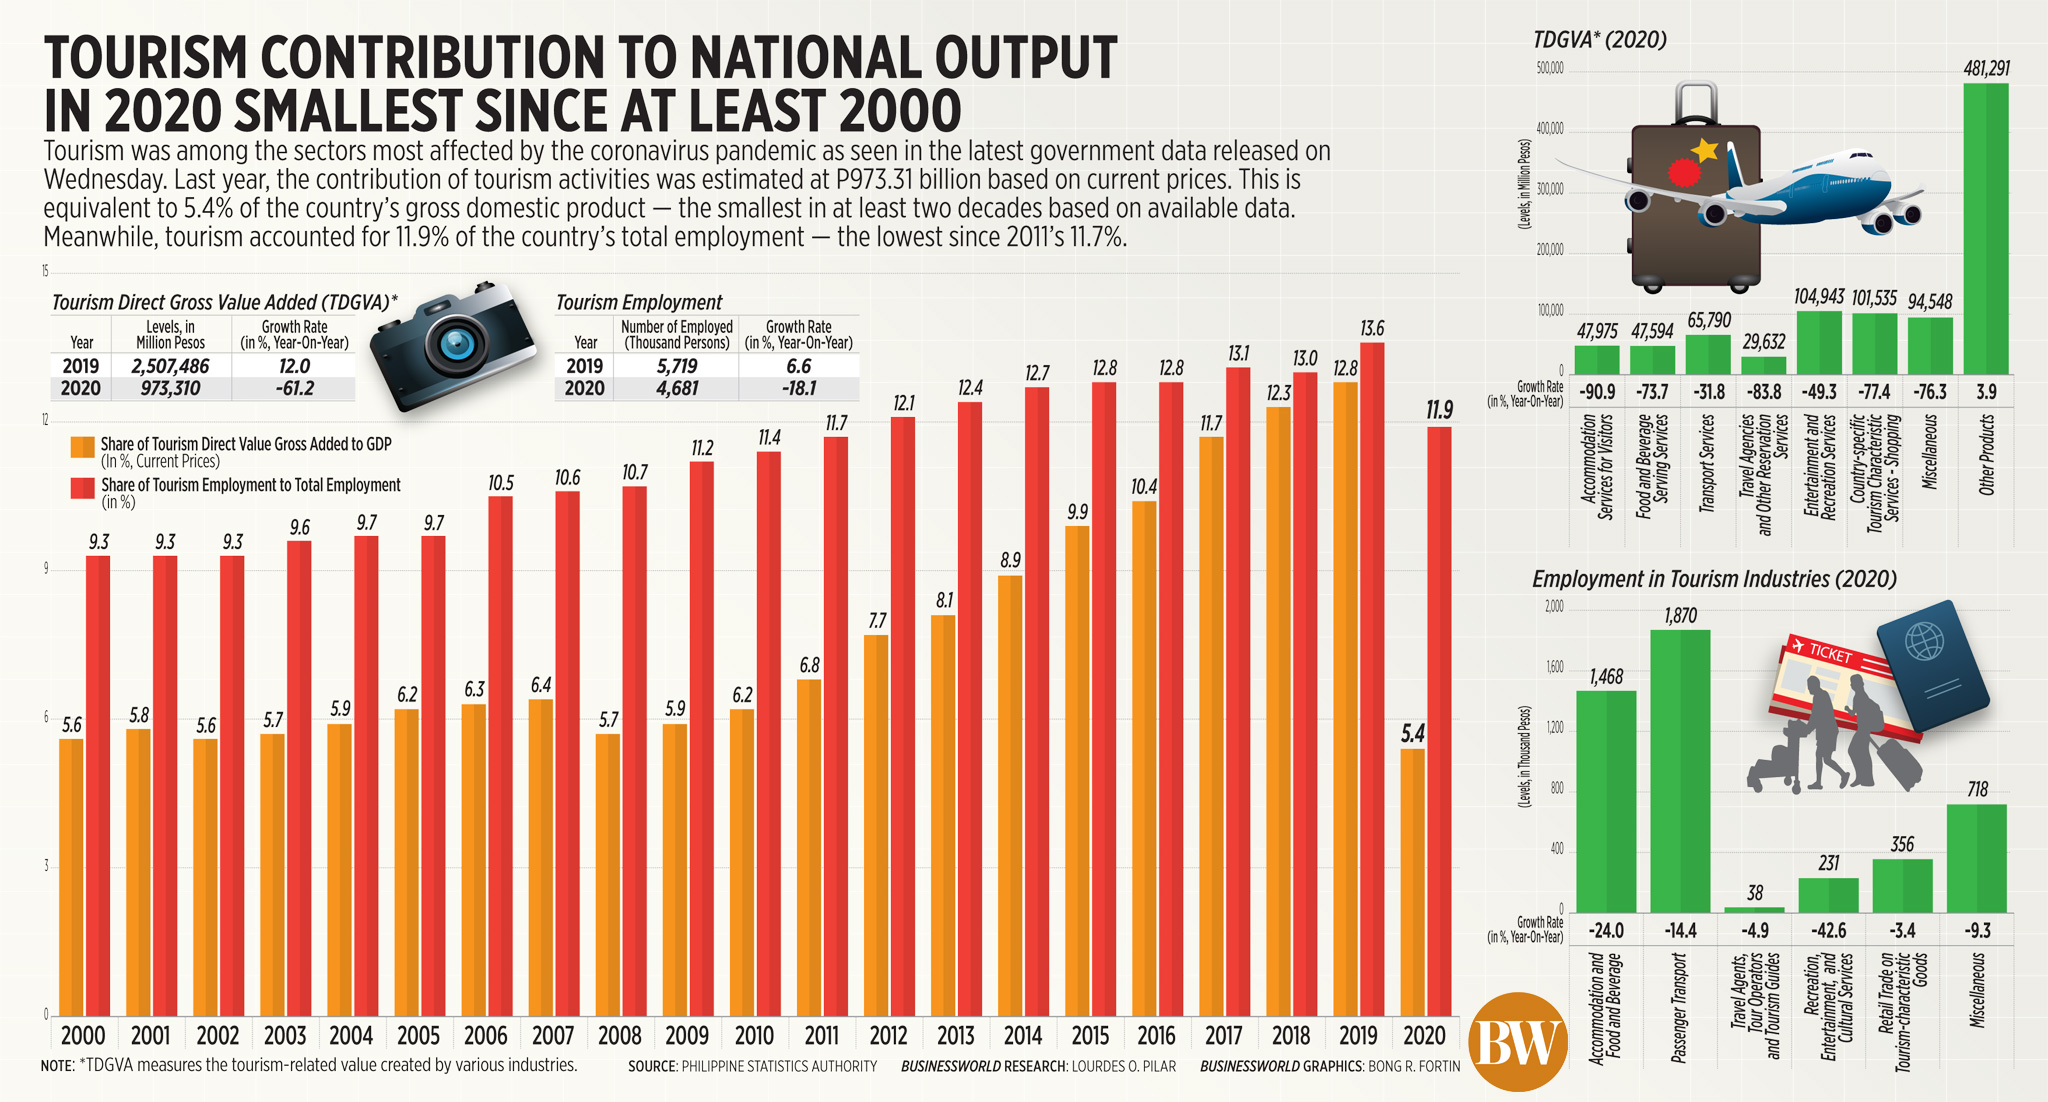 Tourism contribution to national output in 2020 smallest since at least 2000